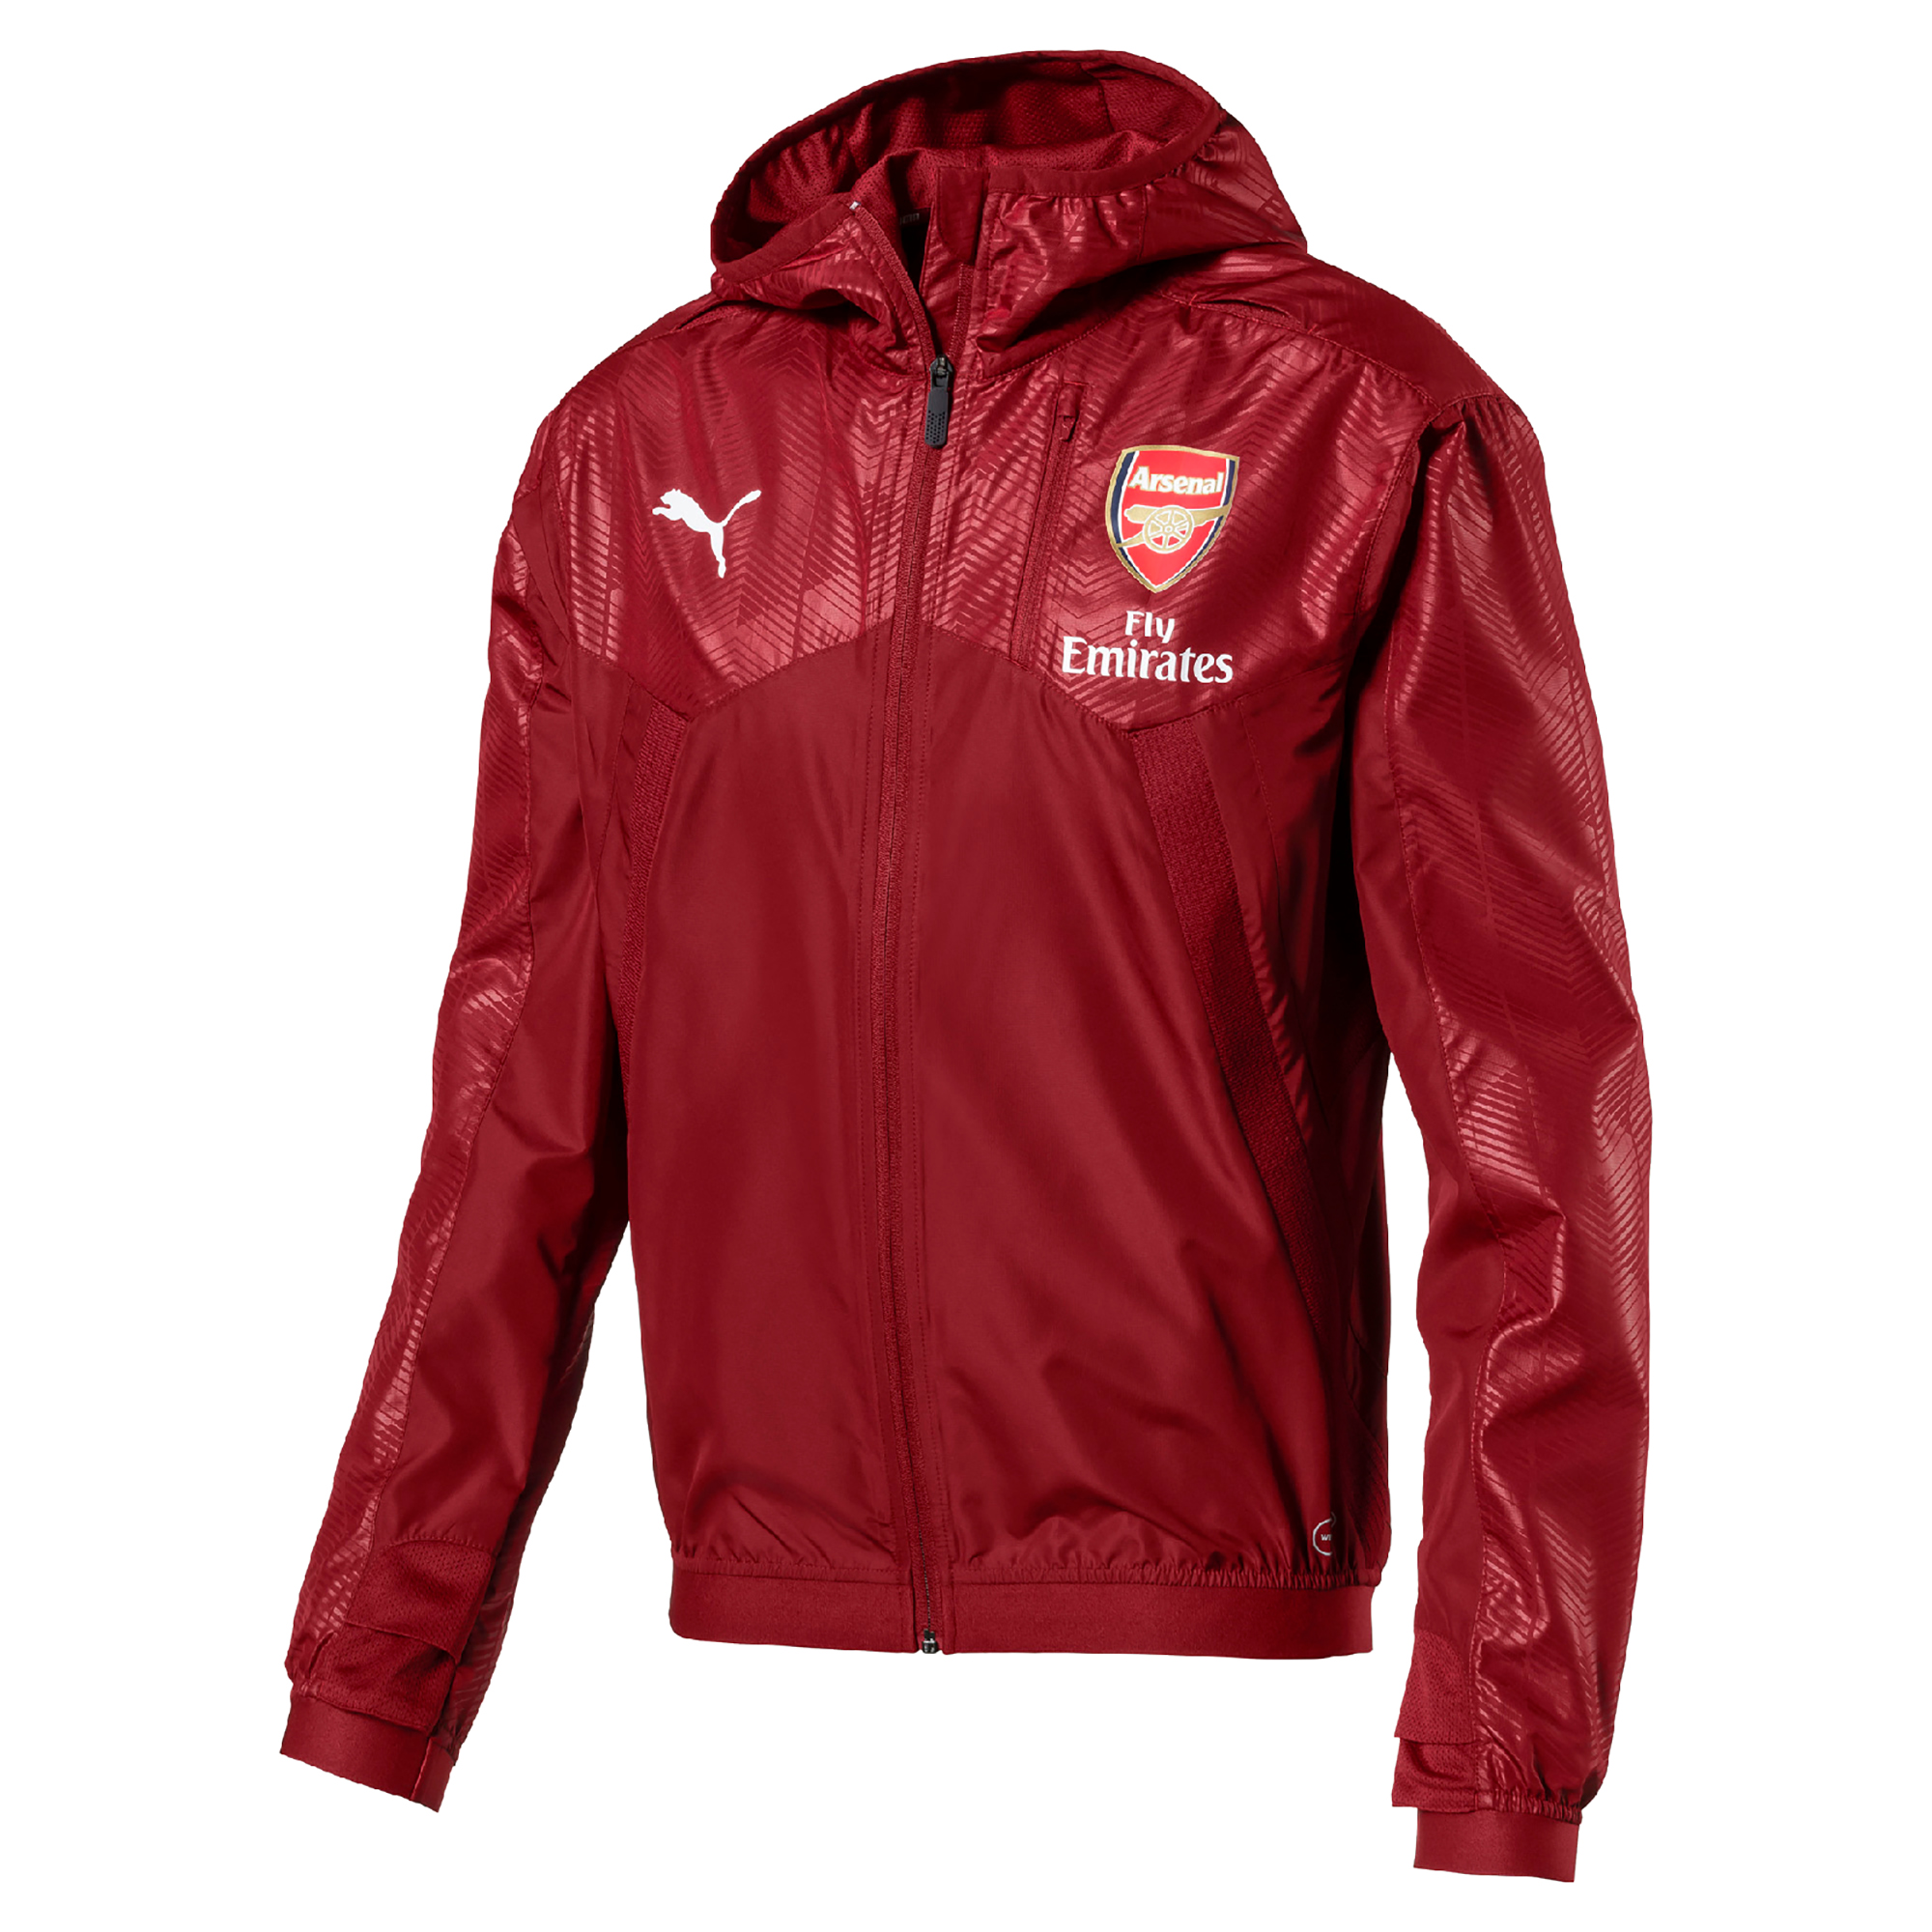 super popular 99885 52ac4 Puma Arsenal FC 17/18 Vent Thermo-R Jacket - Red | Equipment ...